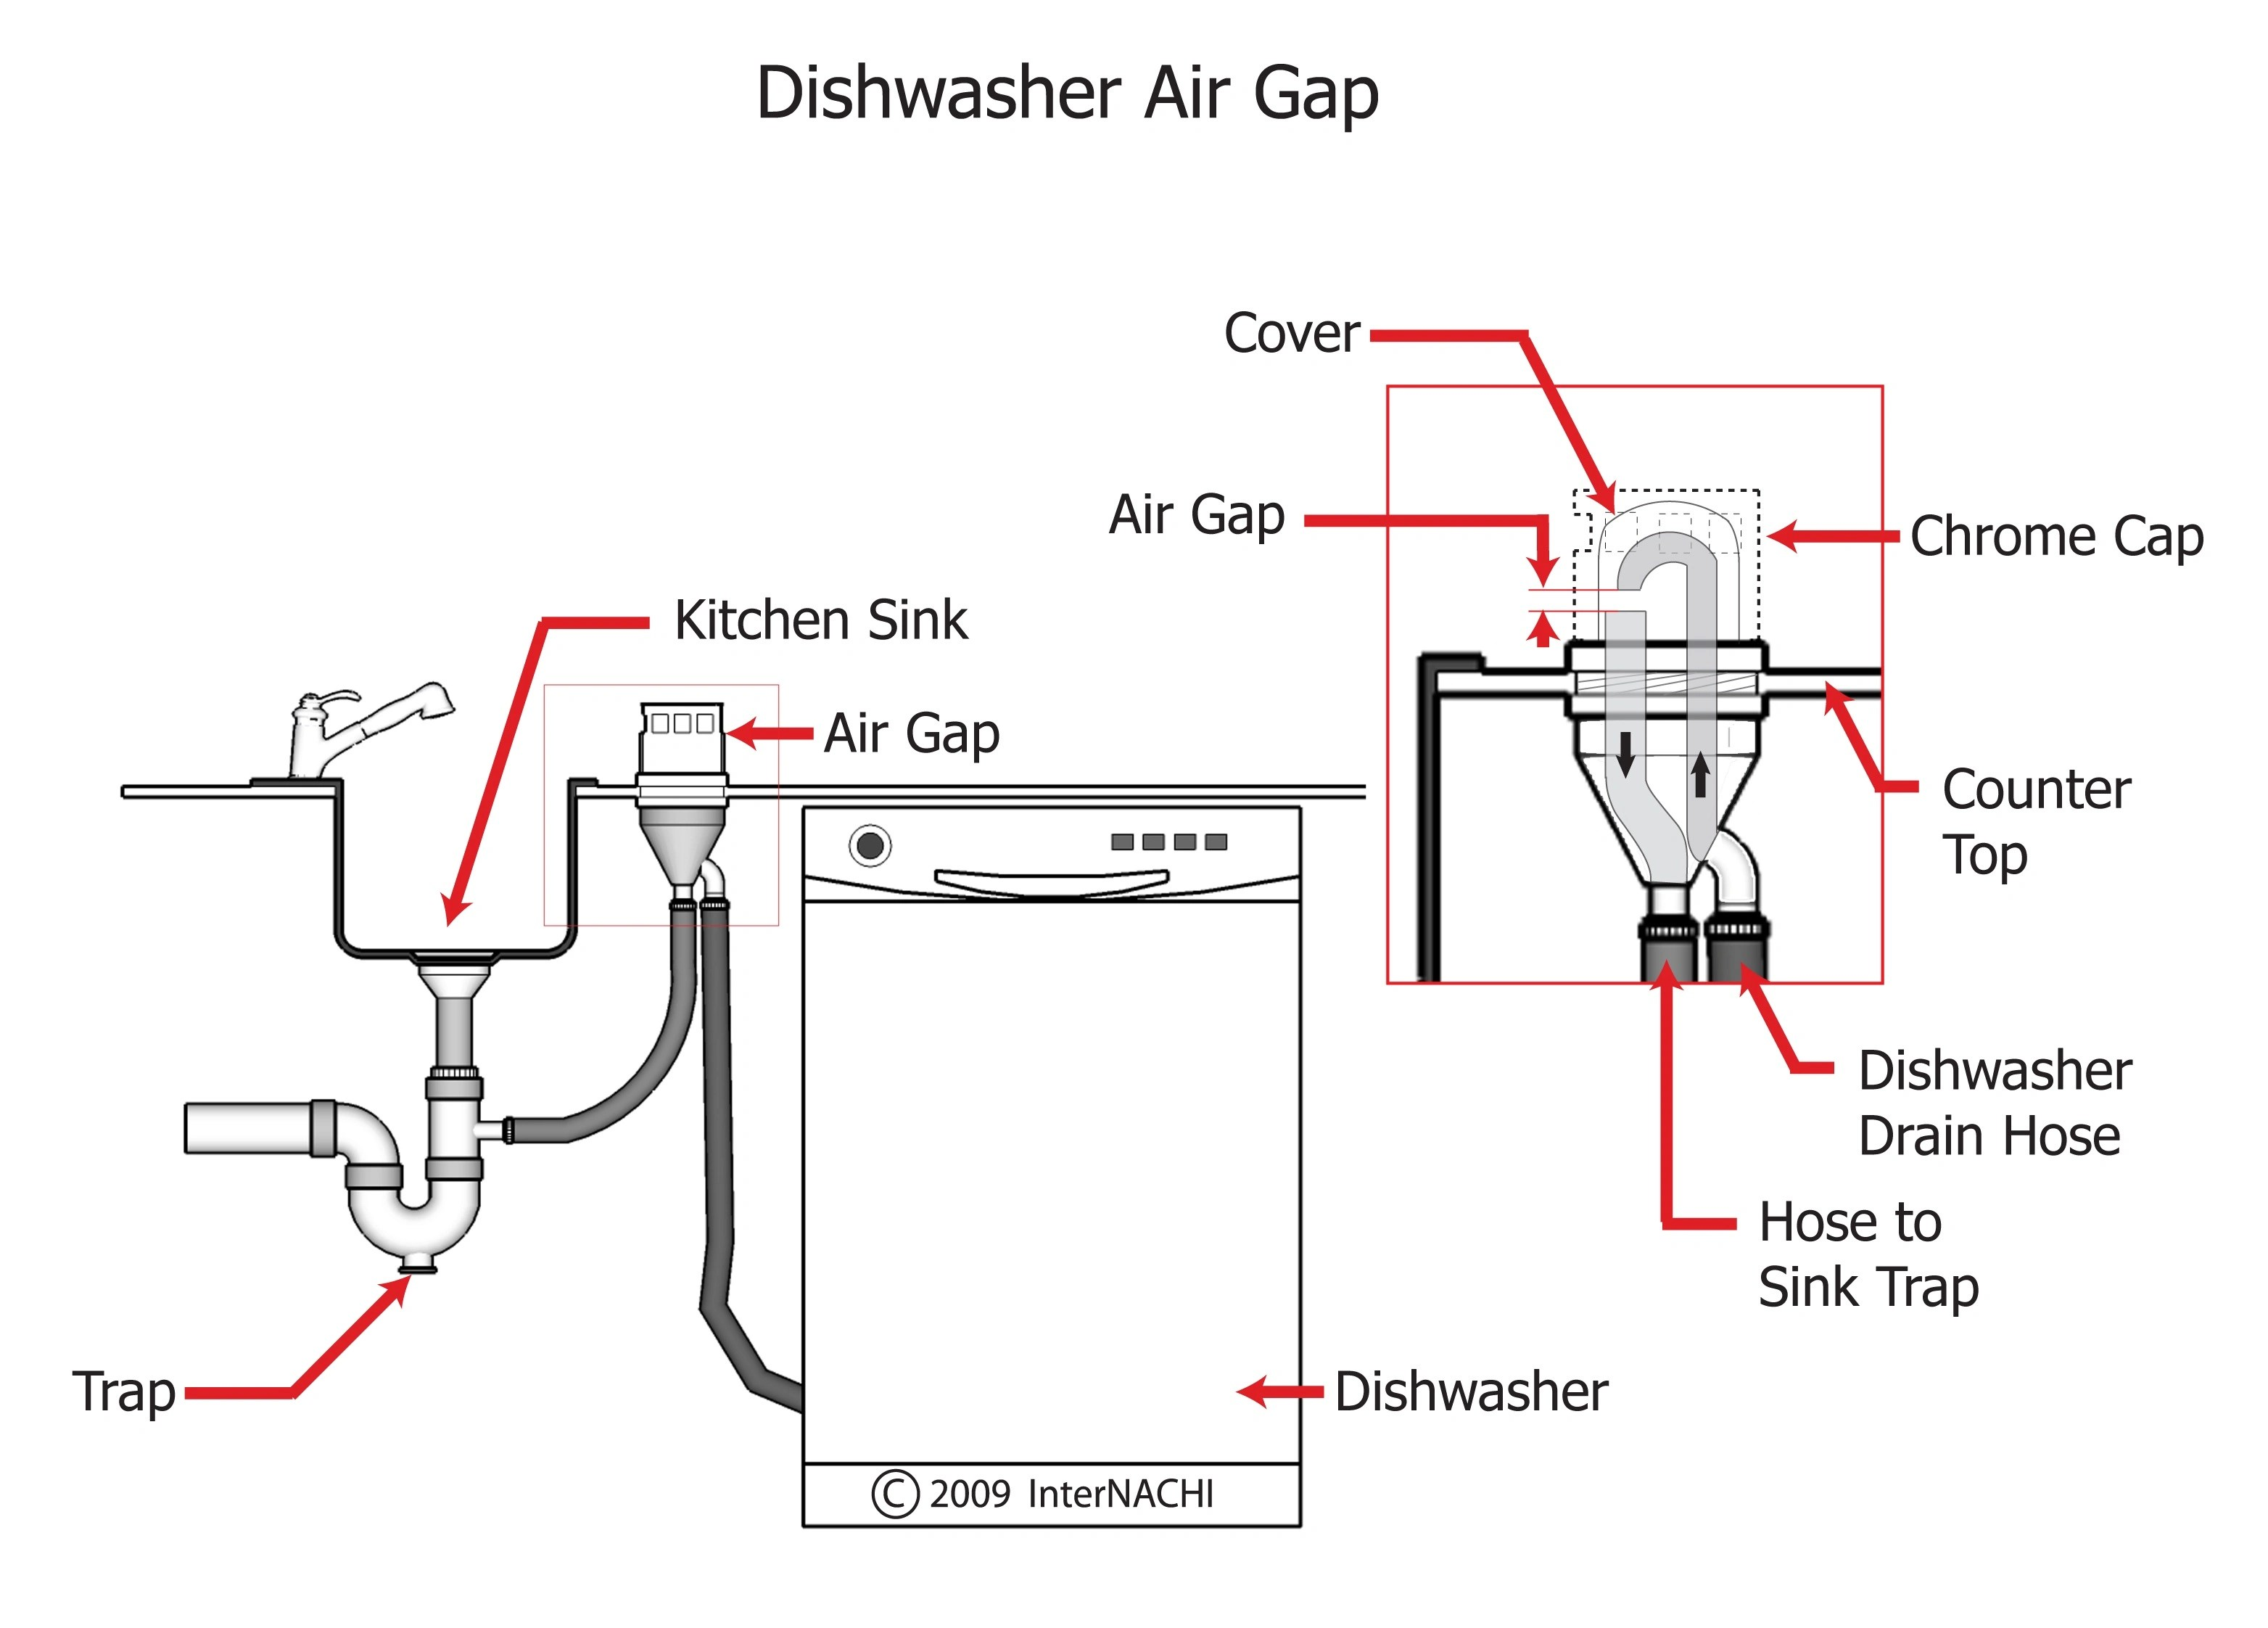 Dishwasher Air Gap